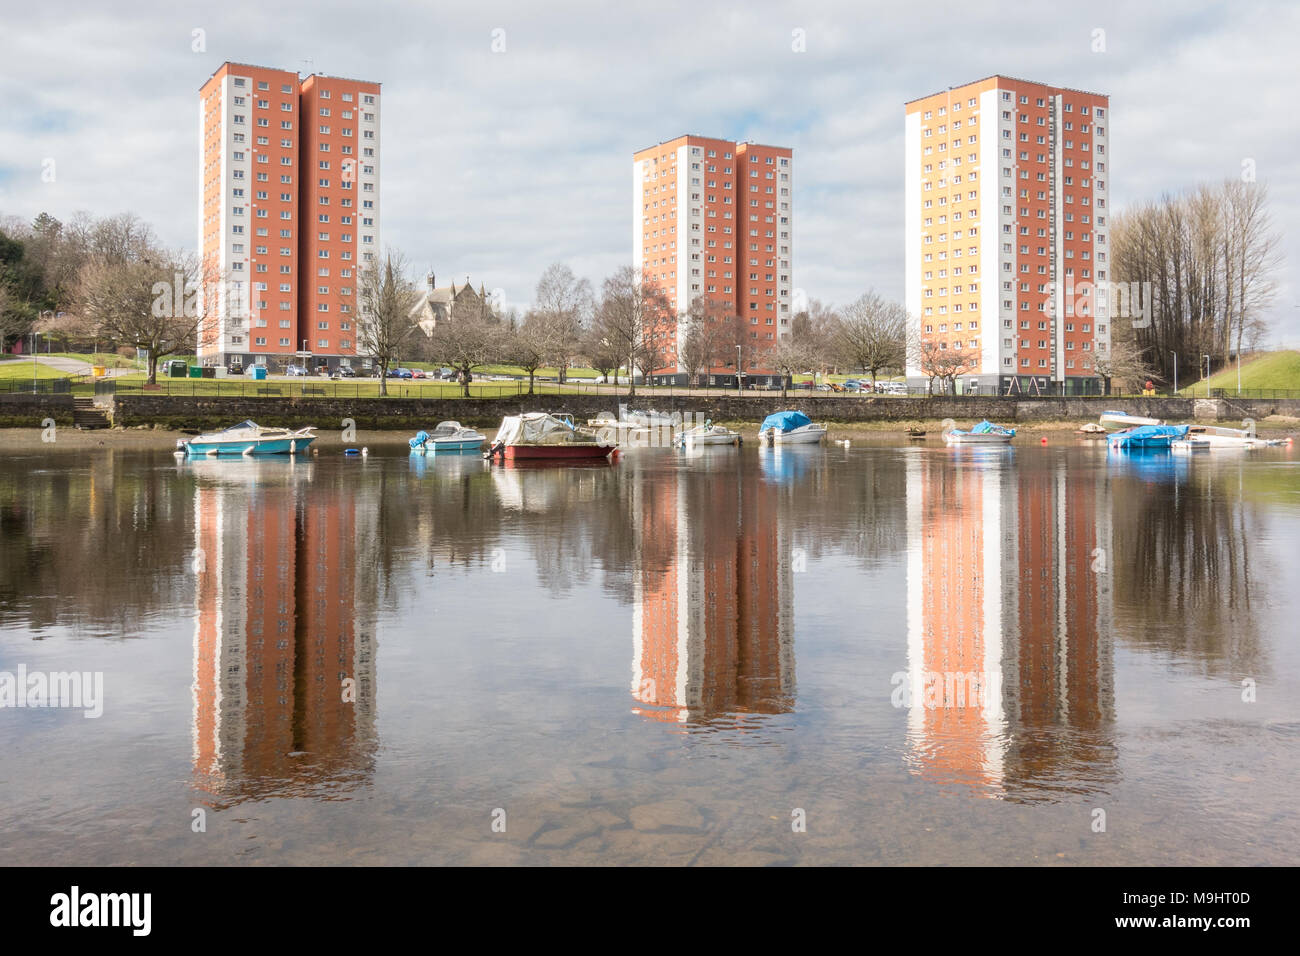 High Rise flats reflected in the River Leven, West Bridgend, Dumbarton, Scotland, UK - Stock Image